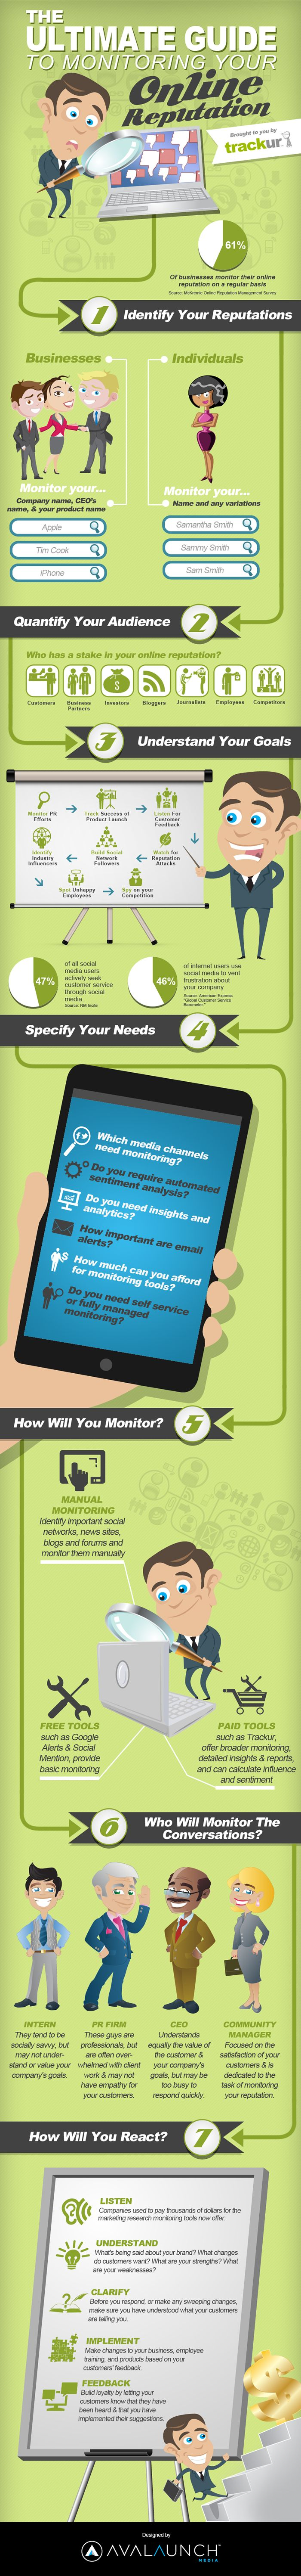 The Complete Guide to Online Reputation Monitoring #infographic